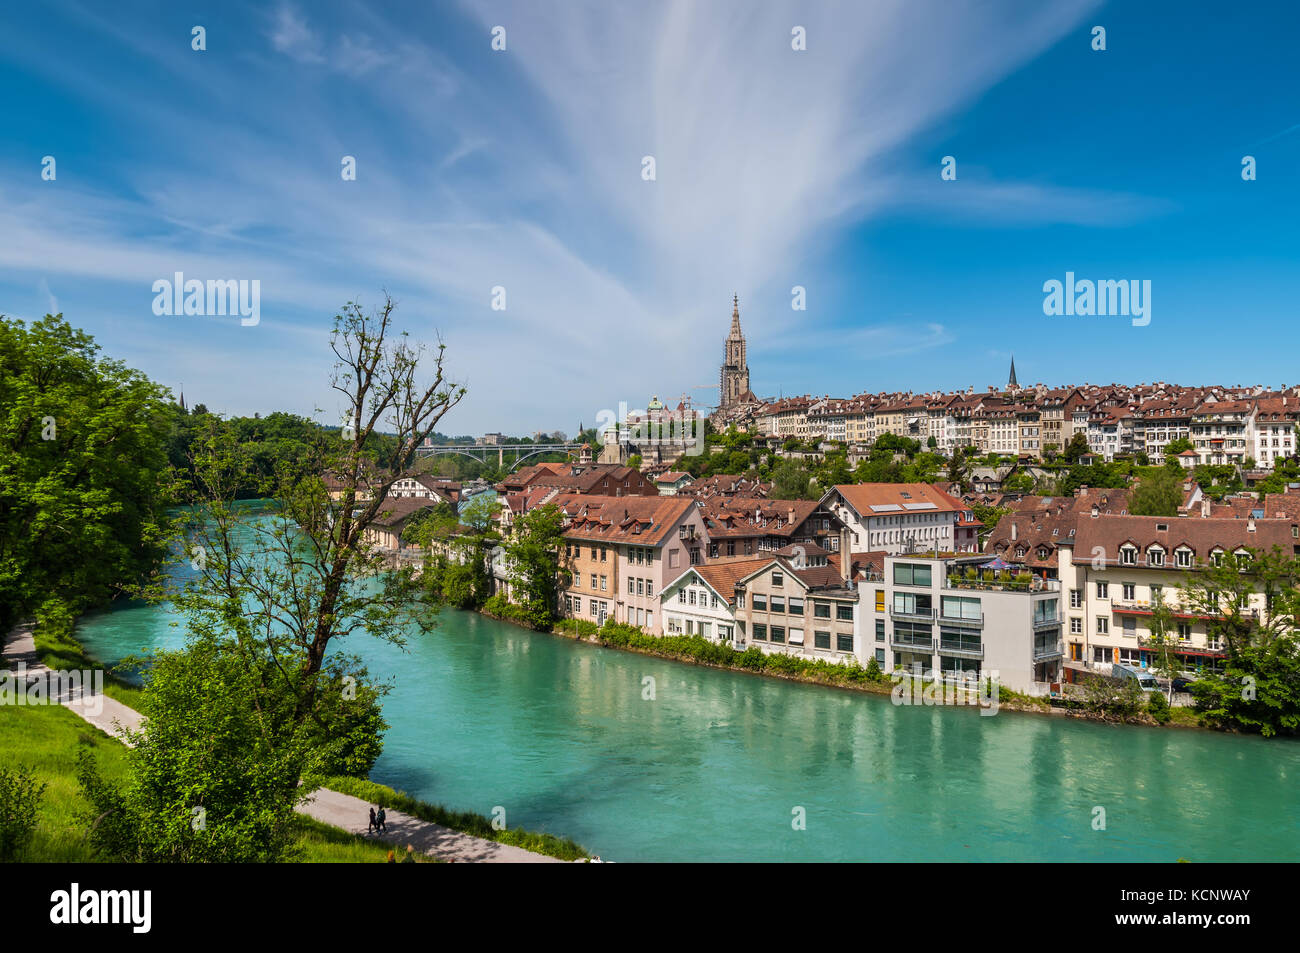 Bern, Switzerland - May 26, 2016: Panoramic view on the magnificent old town of Bern, capital of Switzerland. Stock Photo